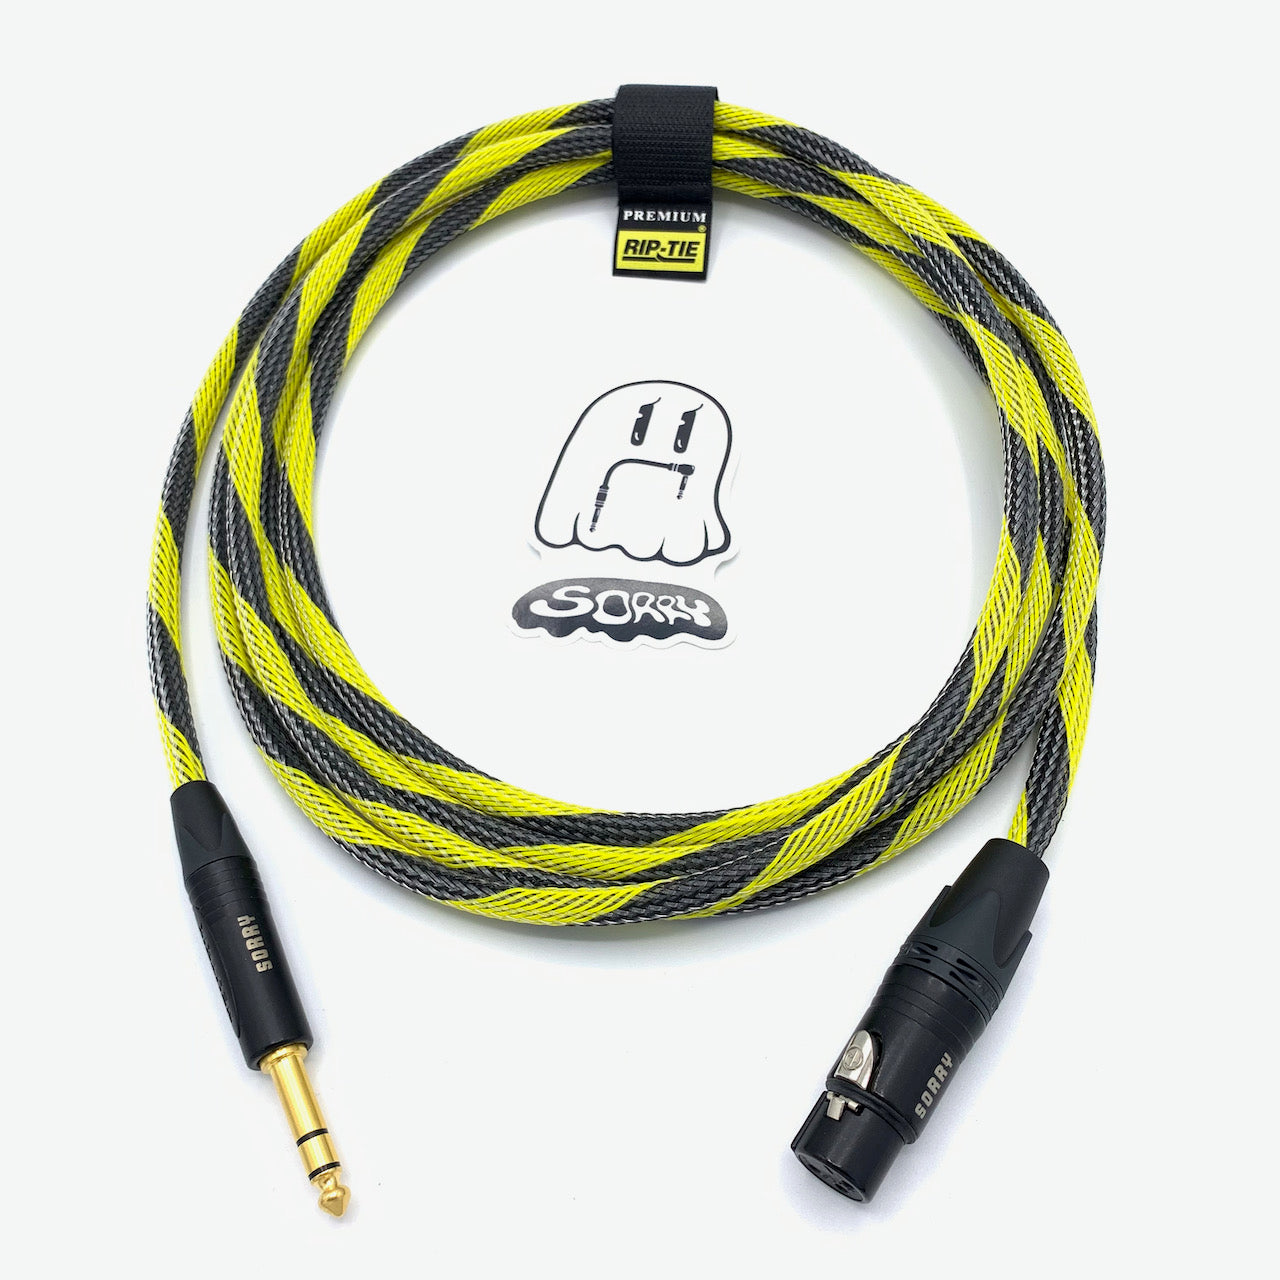 "SORRY XLR Female to 1/4"" TRS Male Cable - Bumble Bee"